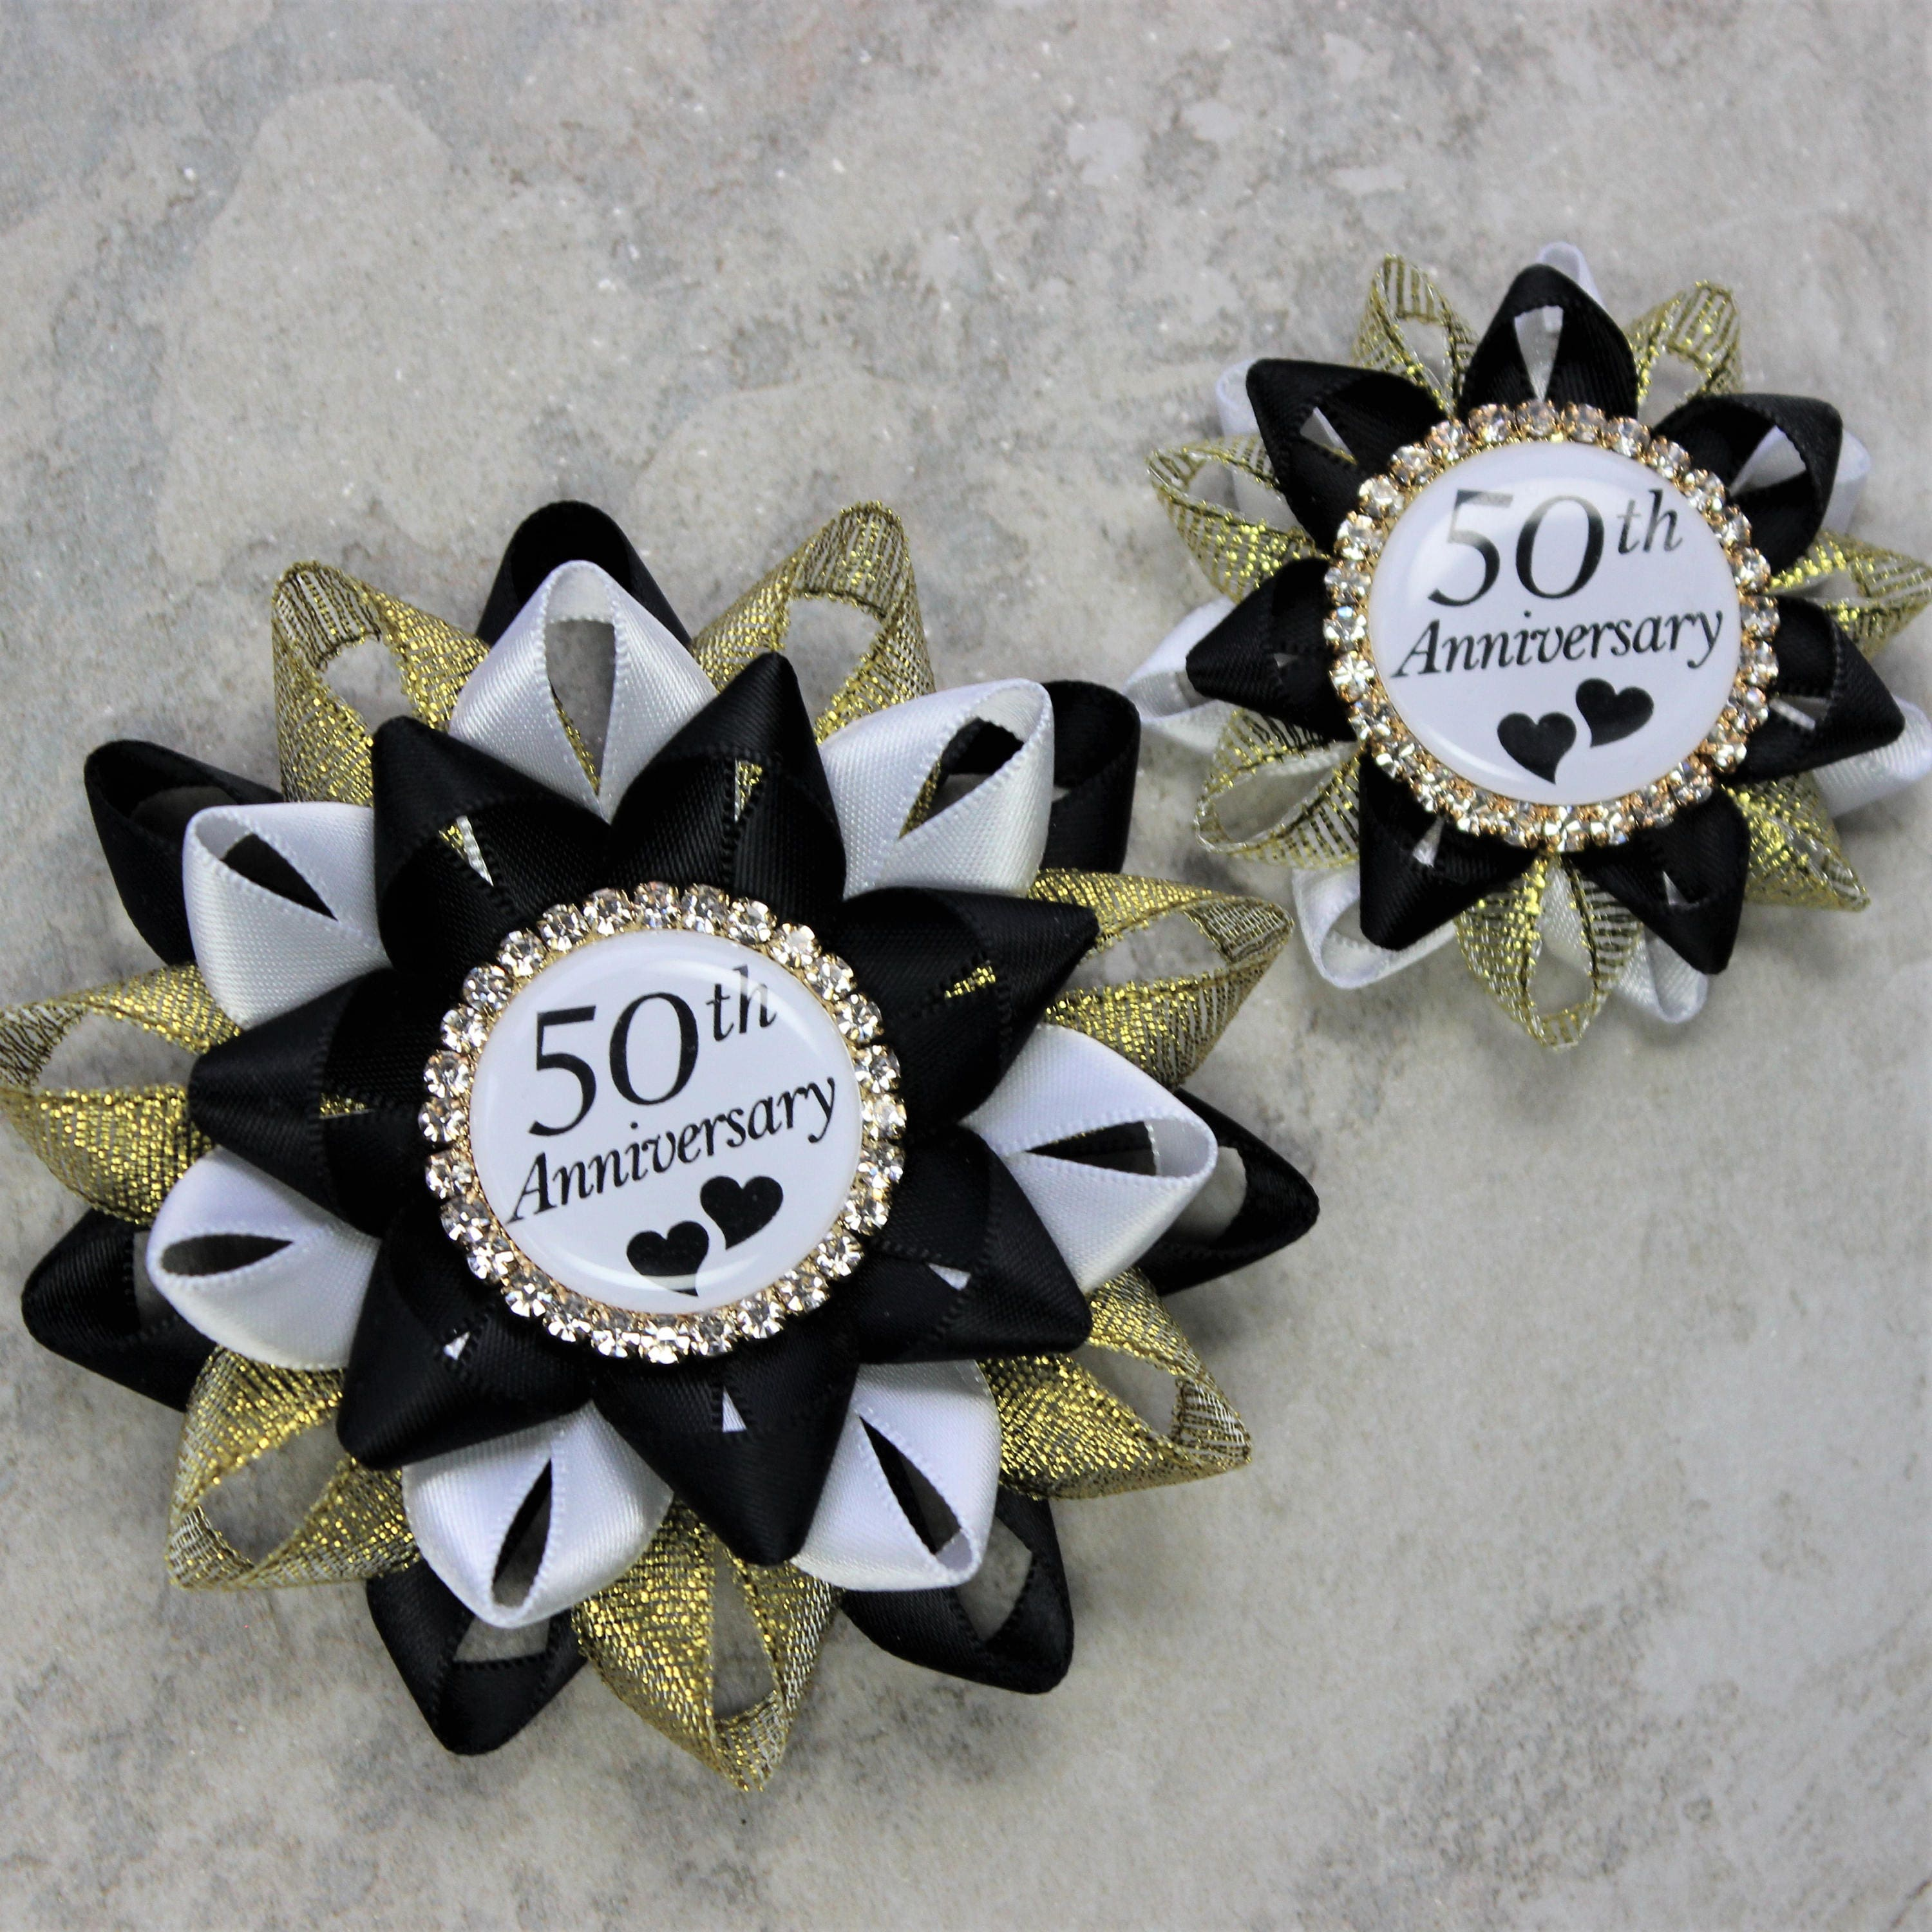 50th Anniversary Decorations 50th Wedding Anniversary Gift For